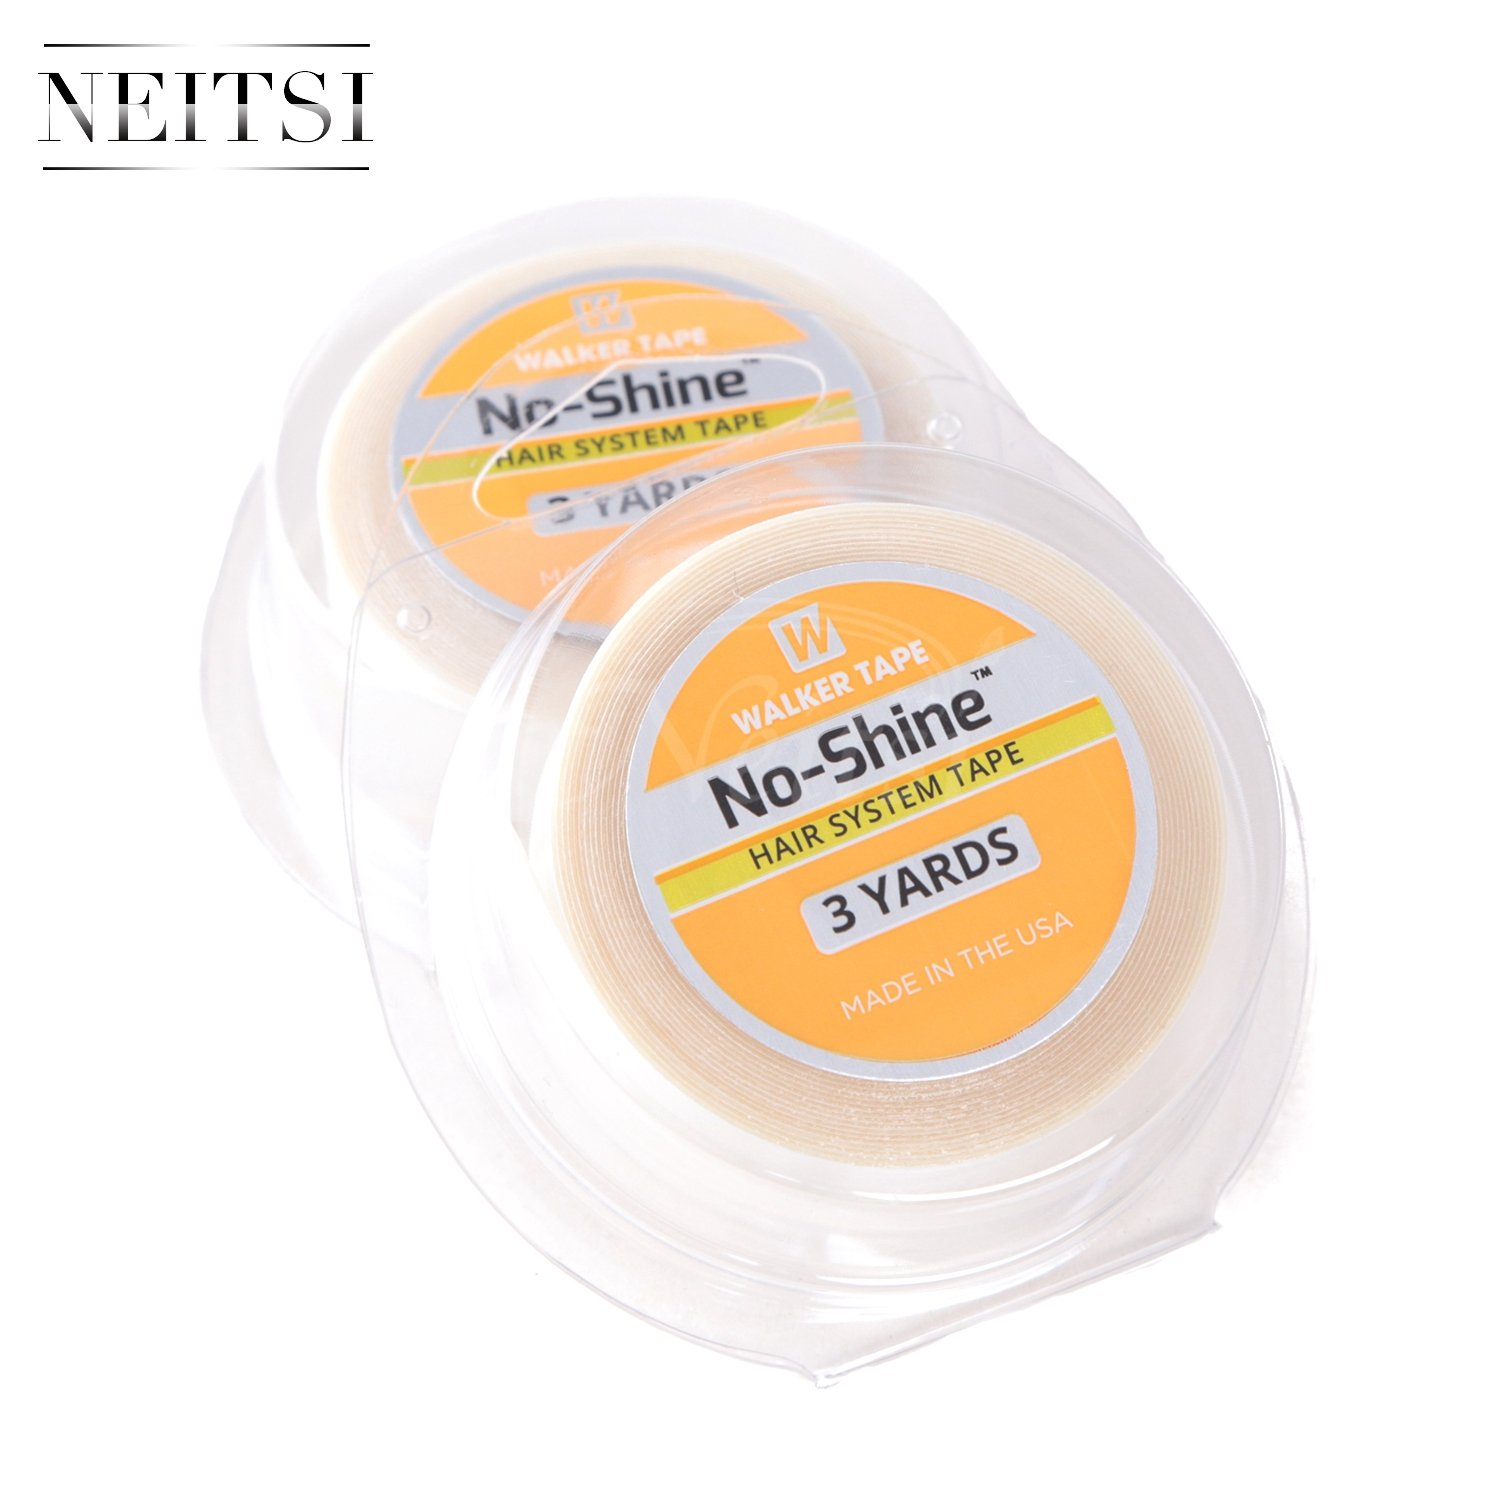 Neitsi 1pc 1/2 X 3Yards No Shine Bonding Double Sided Walker Tape Roll for Tape in Hair Extensions LTD